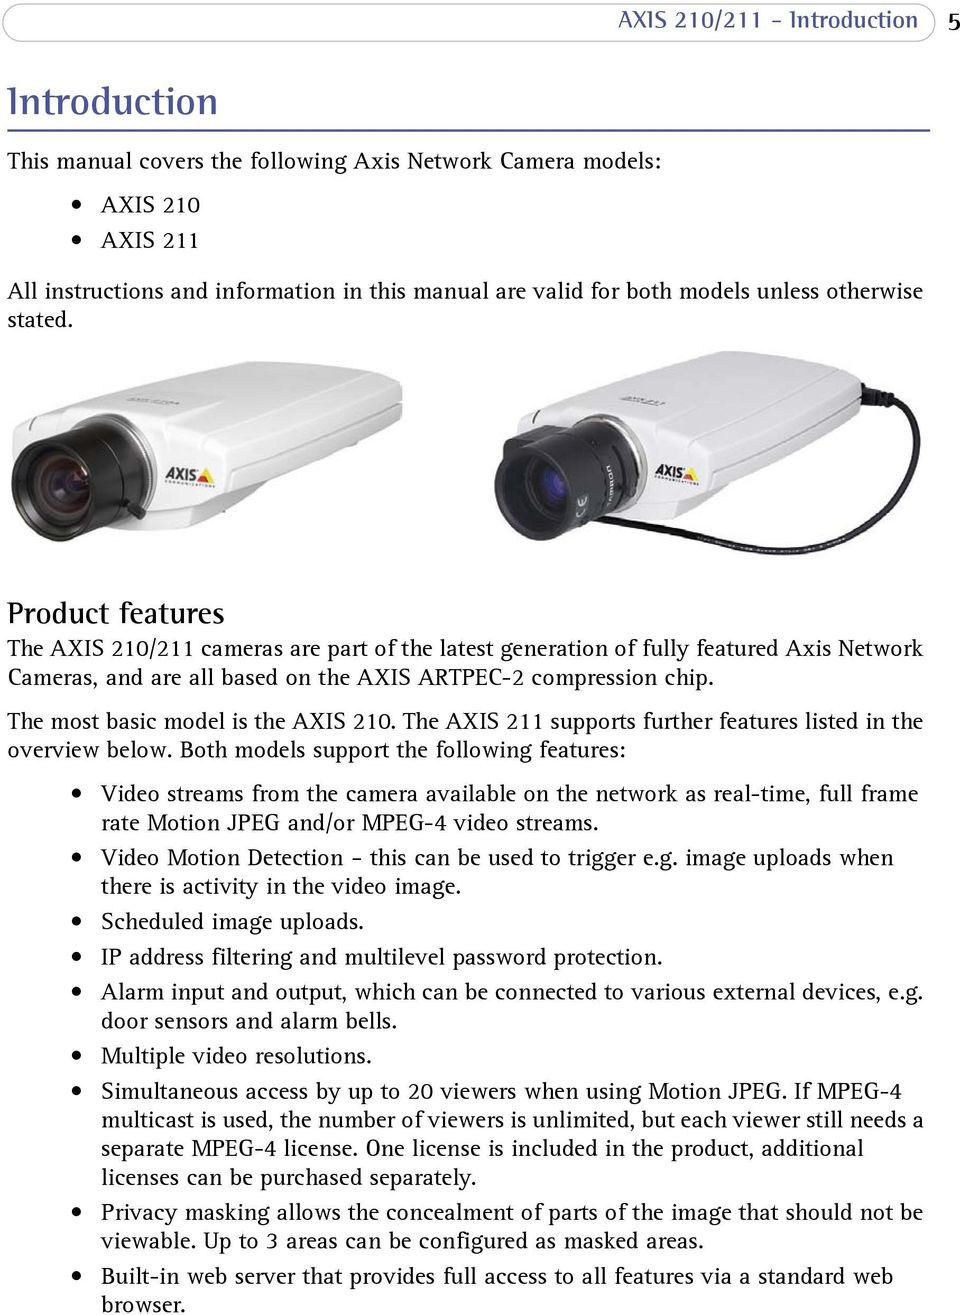 The most basic model is the AXIS 210. The AXIS 211 supports further features listed in the overview below.